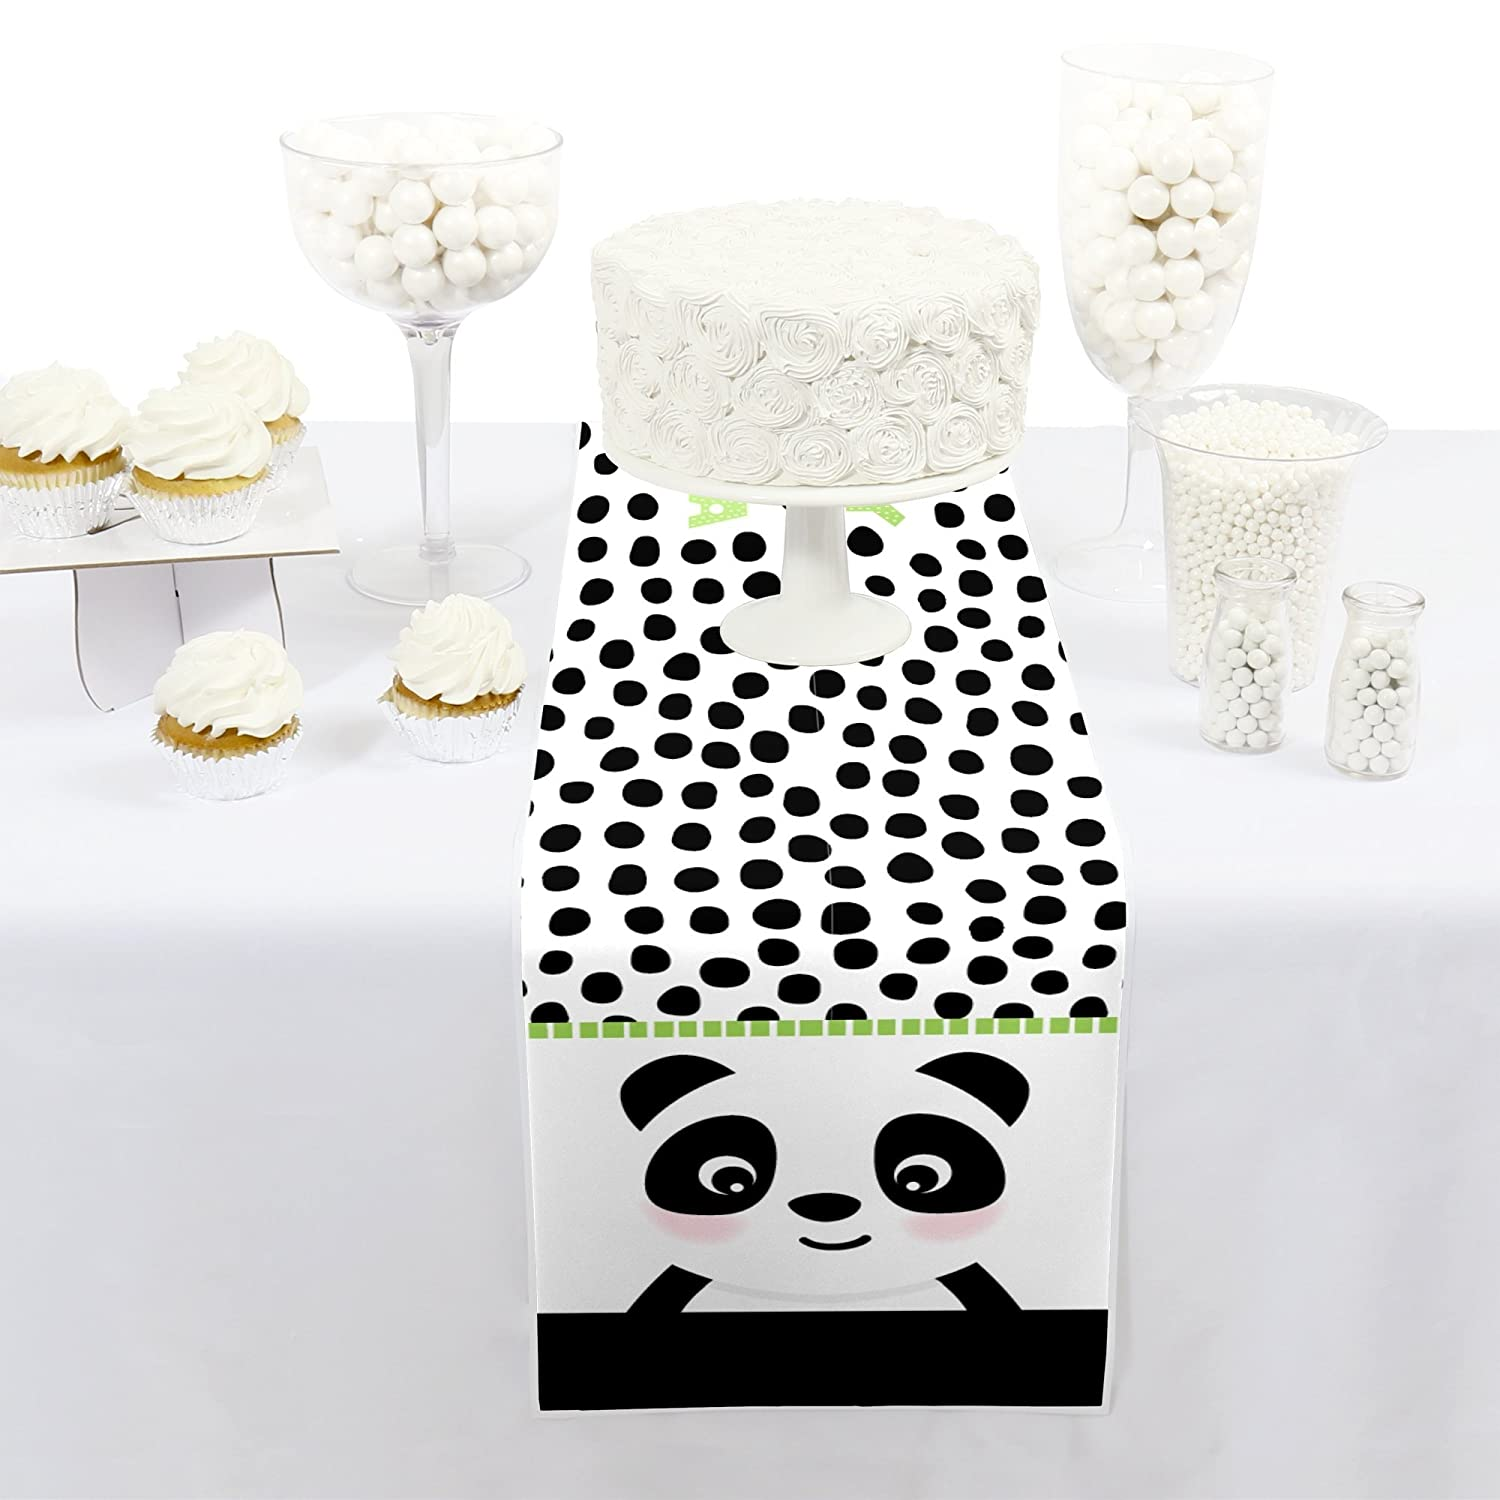 Big Dot of Happiness Party Like a Panda Bear 12 x 60 inches Petite Baby Shower or Birthday Party Paper Table Runner